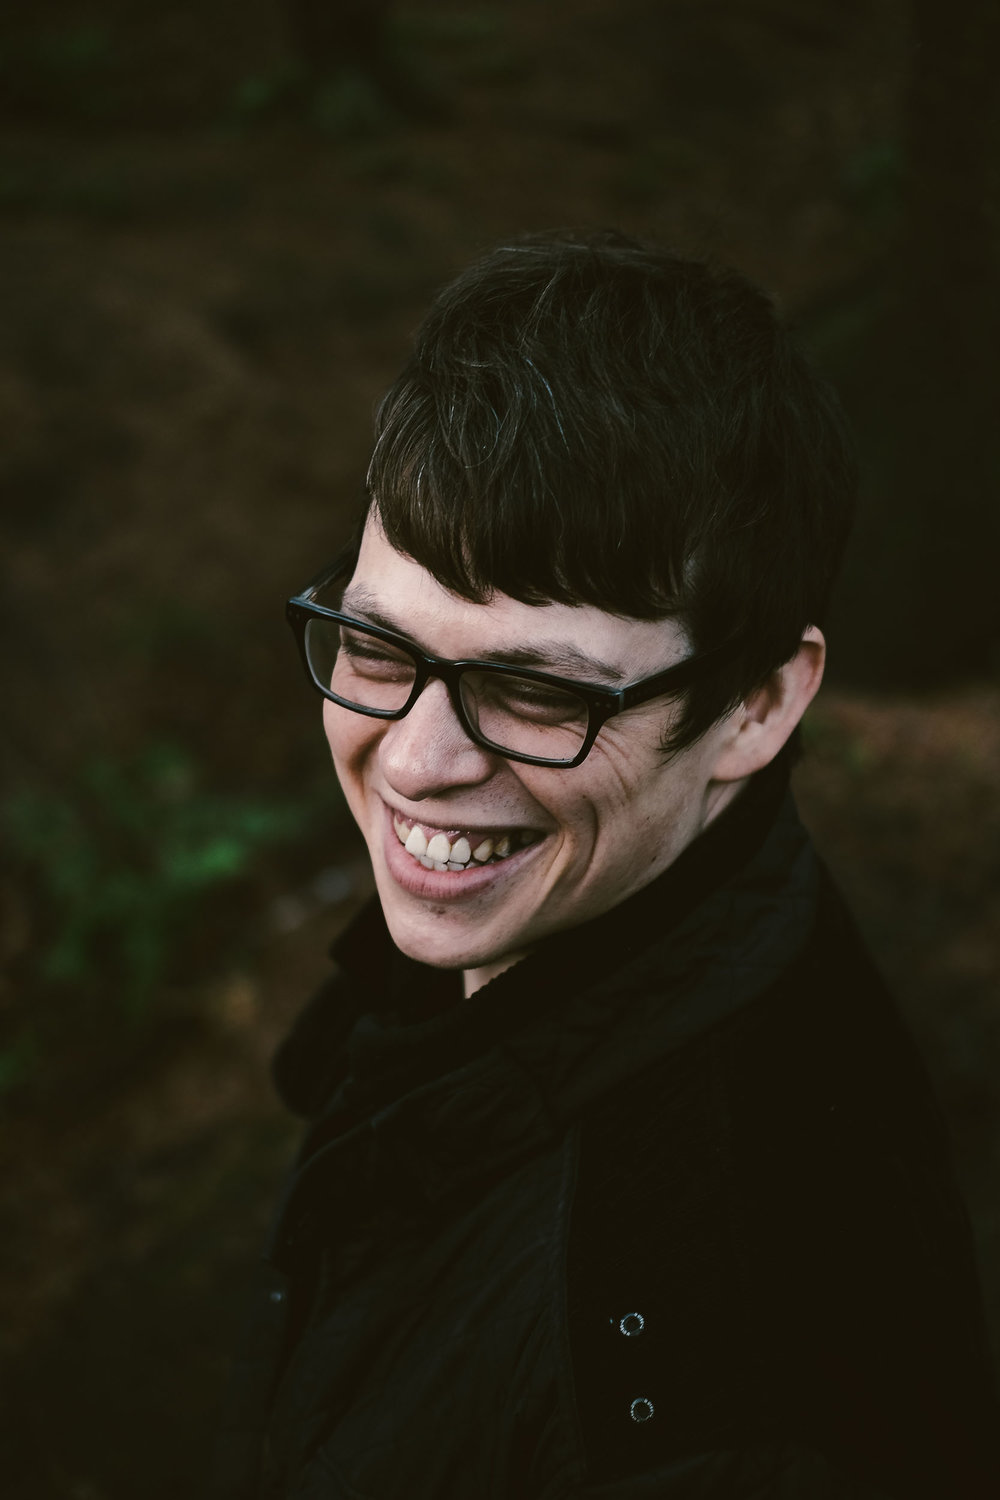 Man with glasses laughs in close up portrait